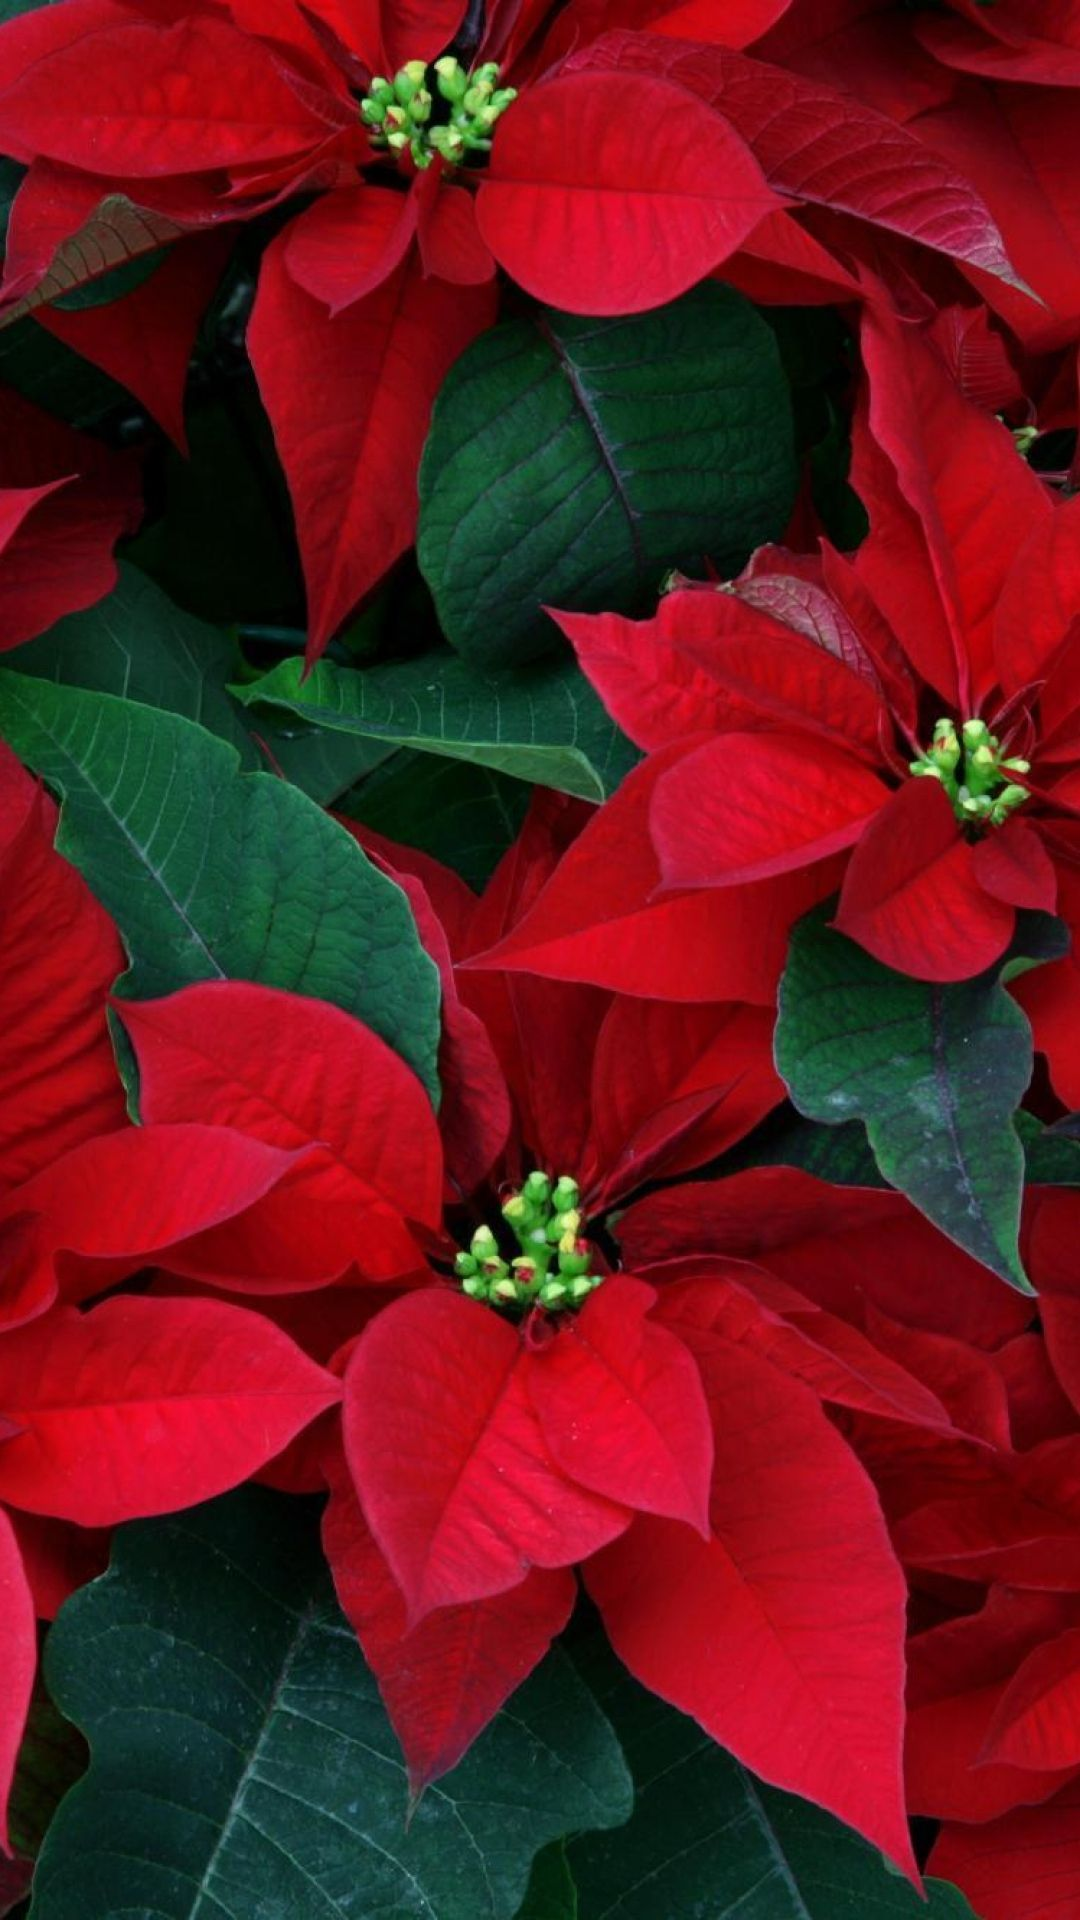 poinsettia, flowers, herbs, leaves, red, close-up | Flowering ...